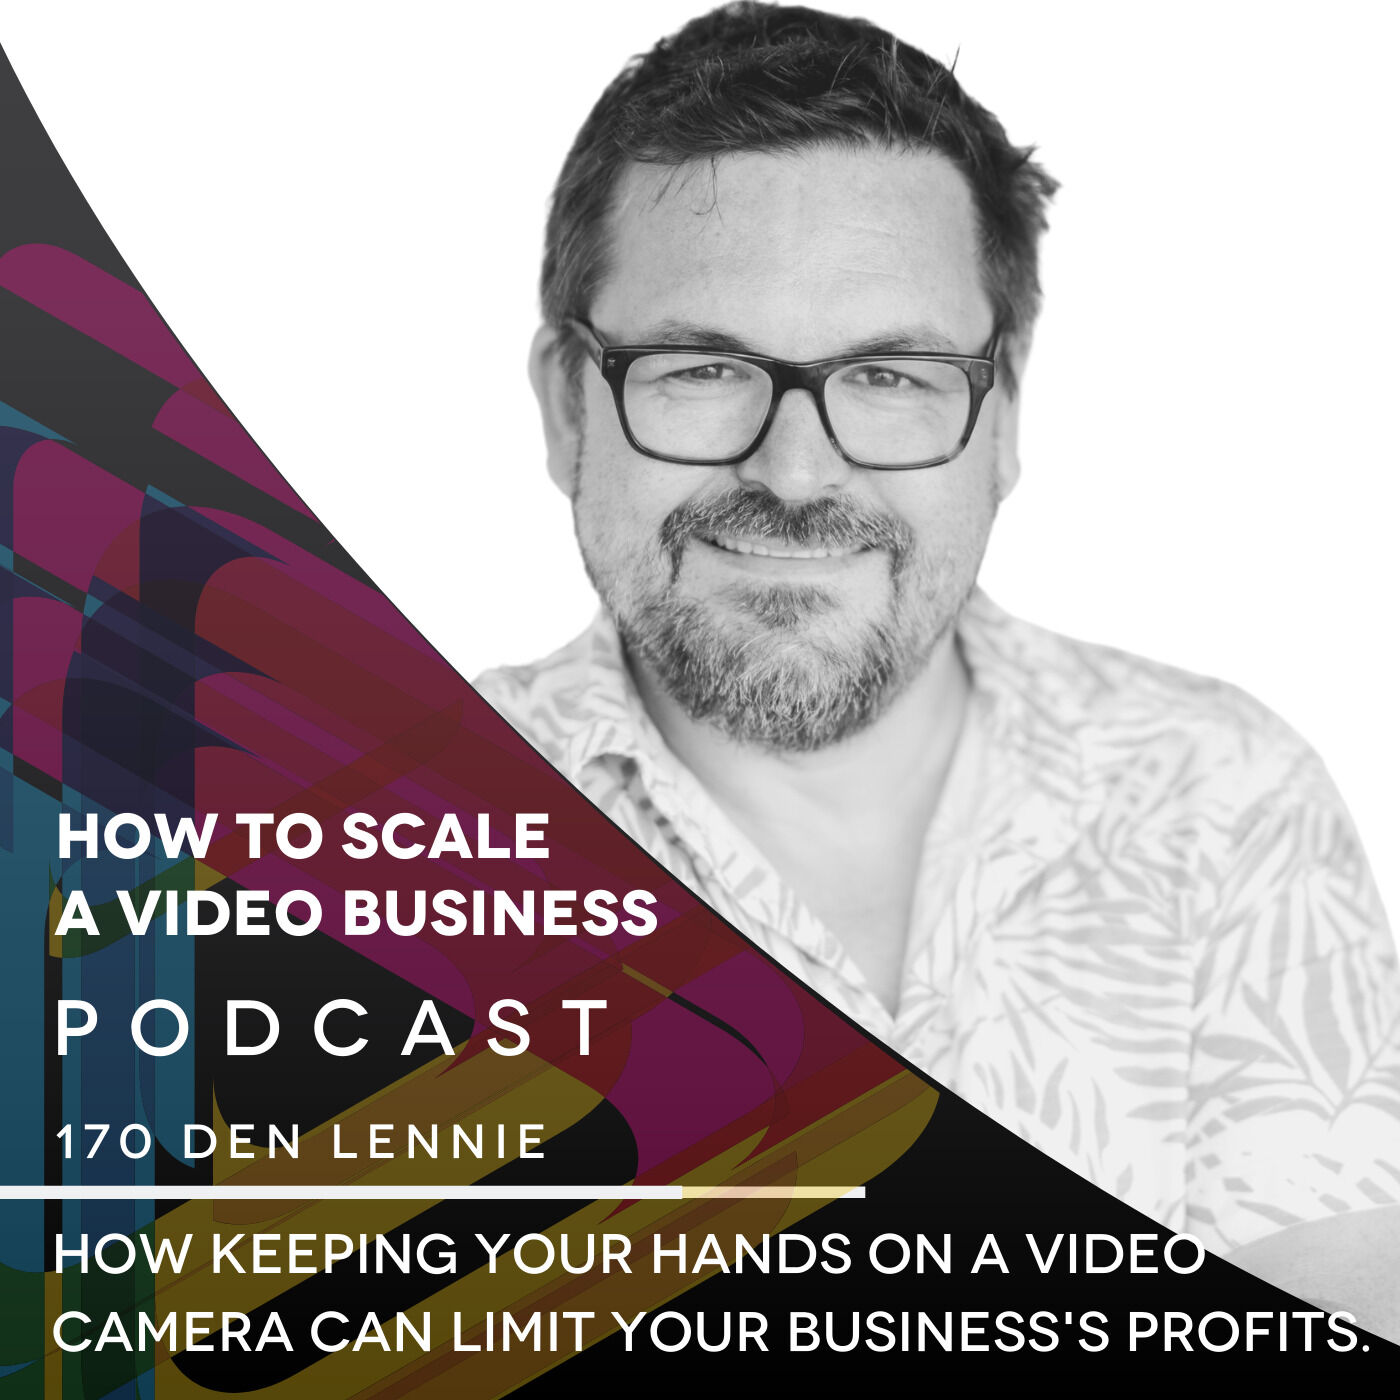 How keeping your hands on a video camera can limit your business's profits. EP #170 - Den Lennie